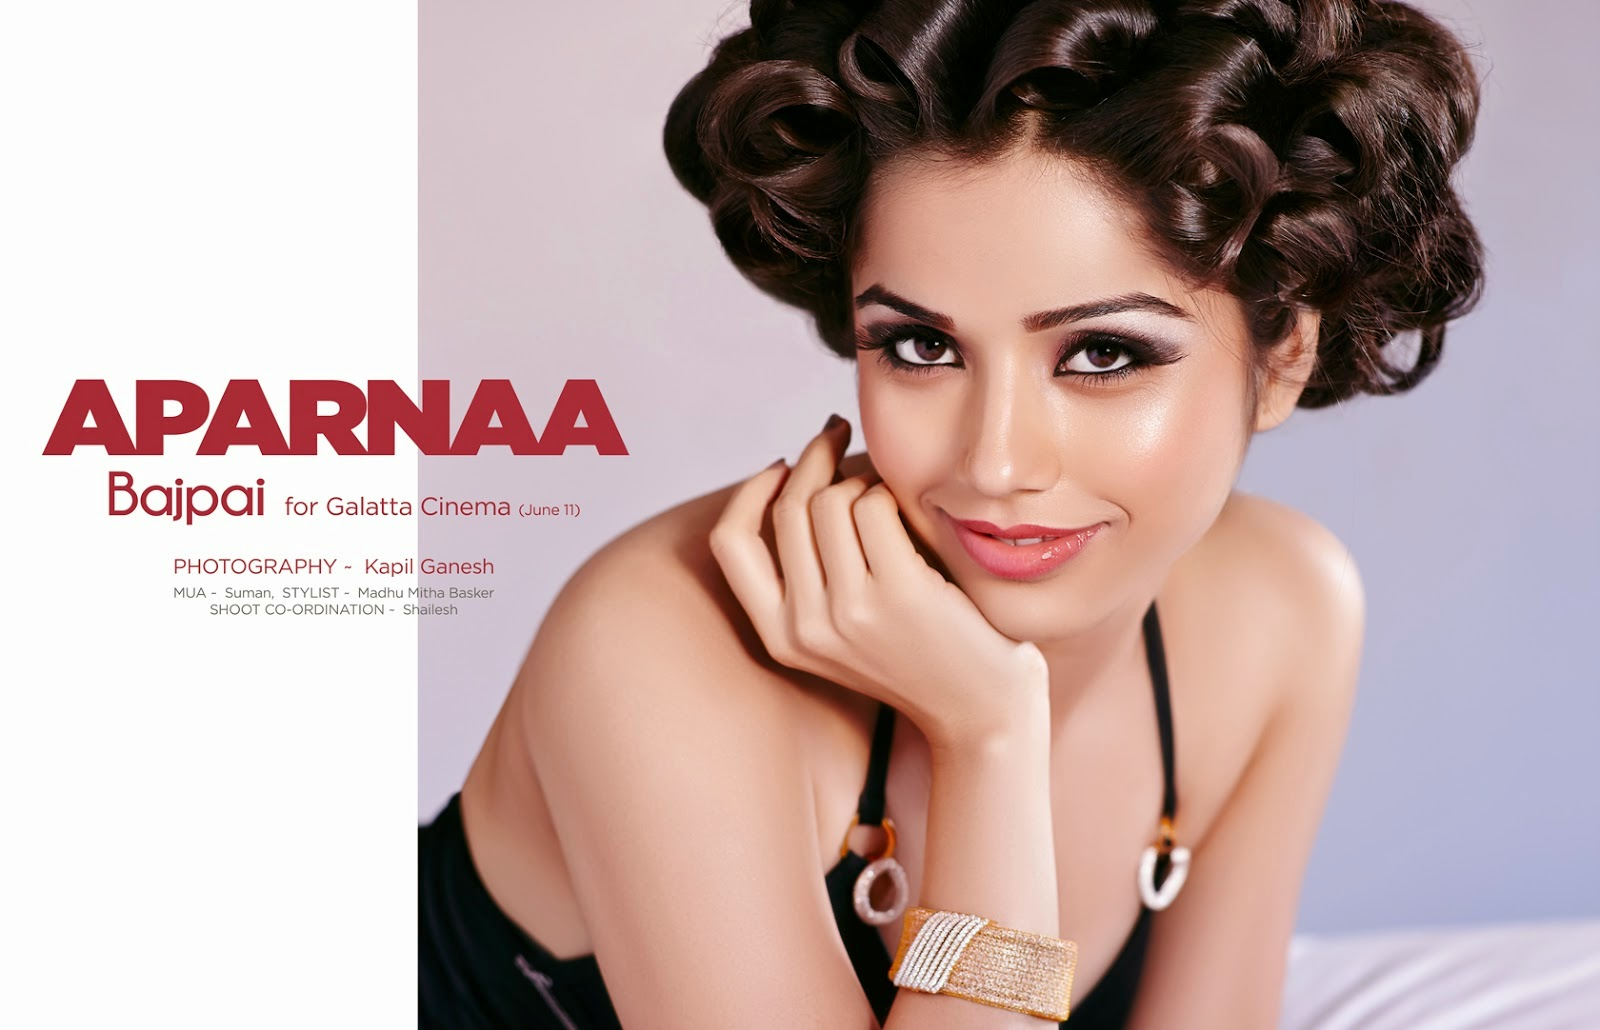 , Aparnaa Bajpai for Galatta Cinema Magazine